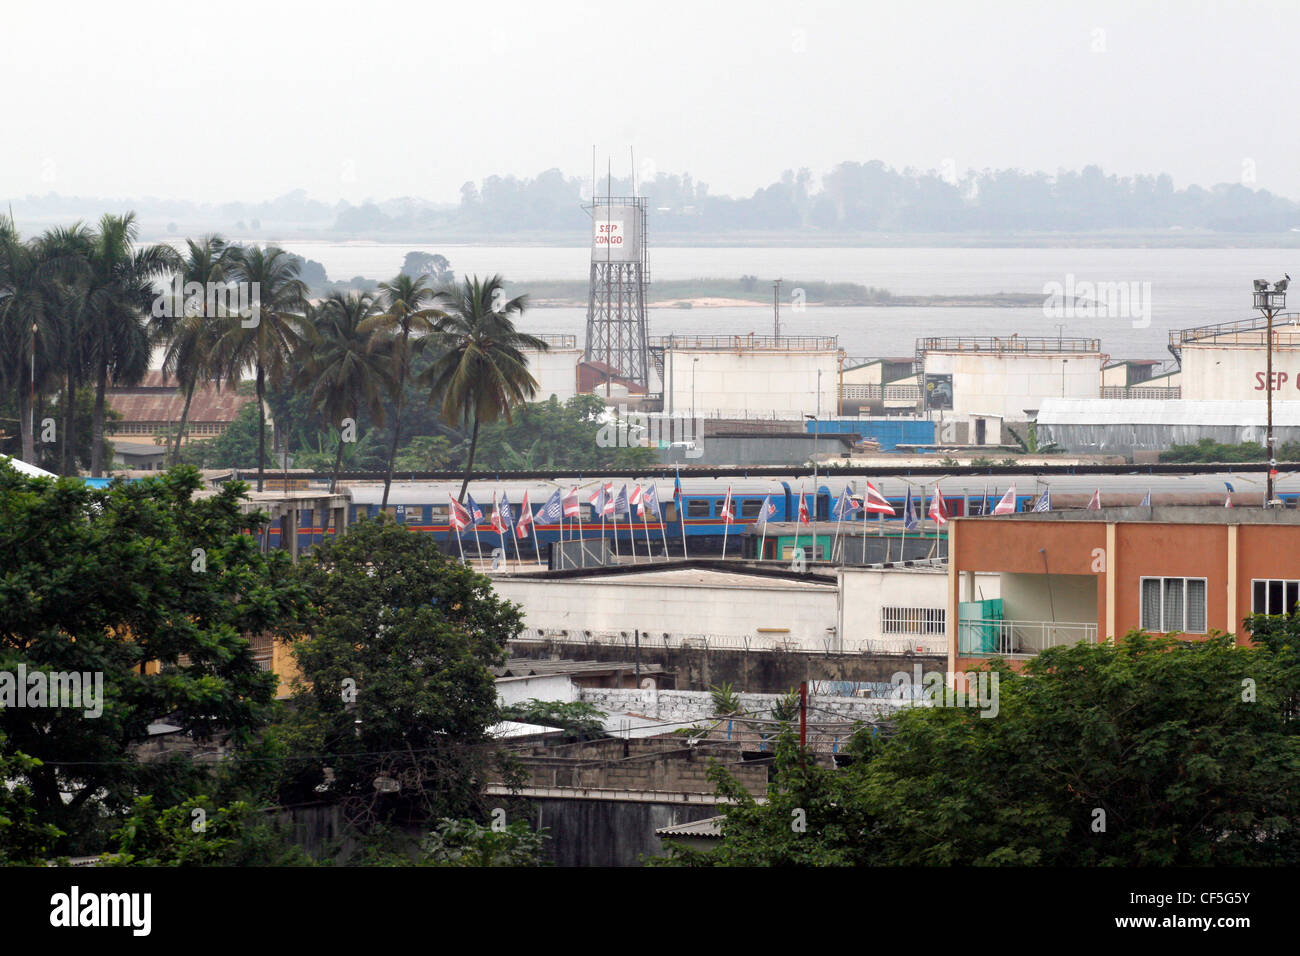 Looking across the city to the Congo River. La Ville, Kinshasa, DRC. - Stock Image